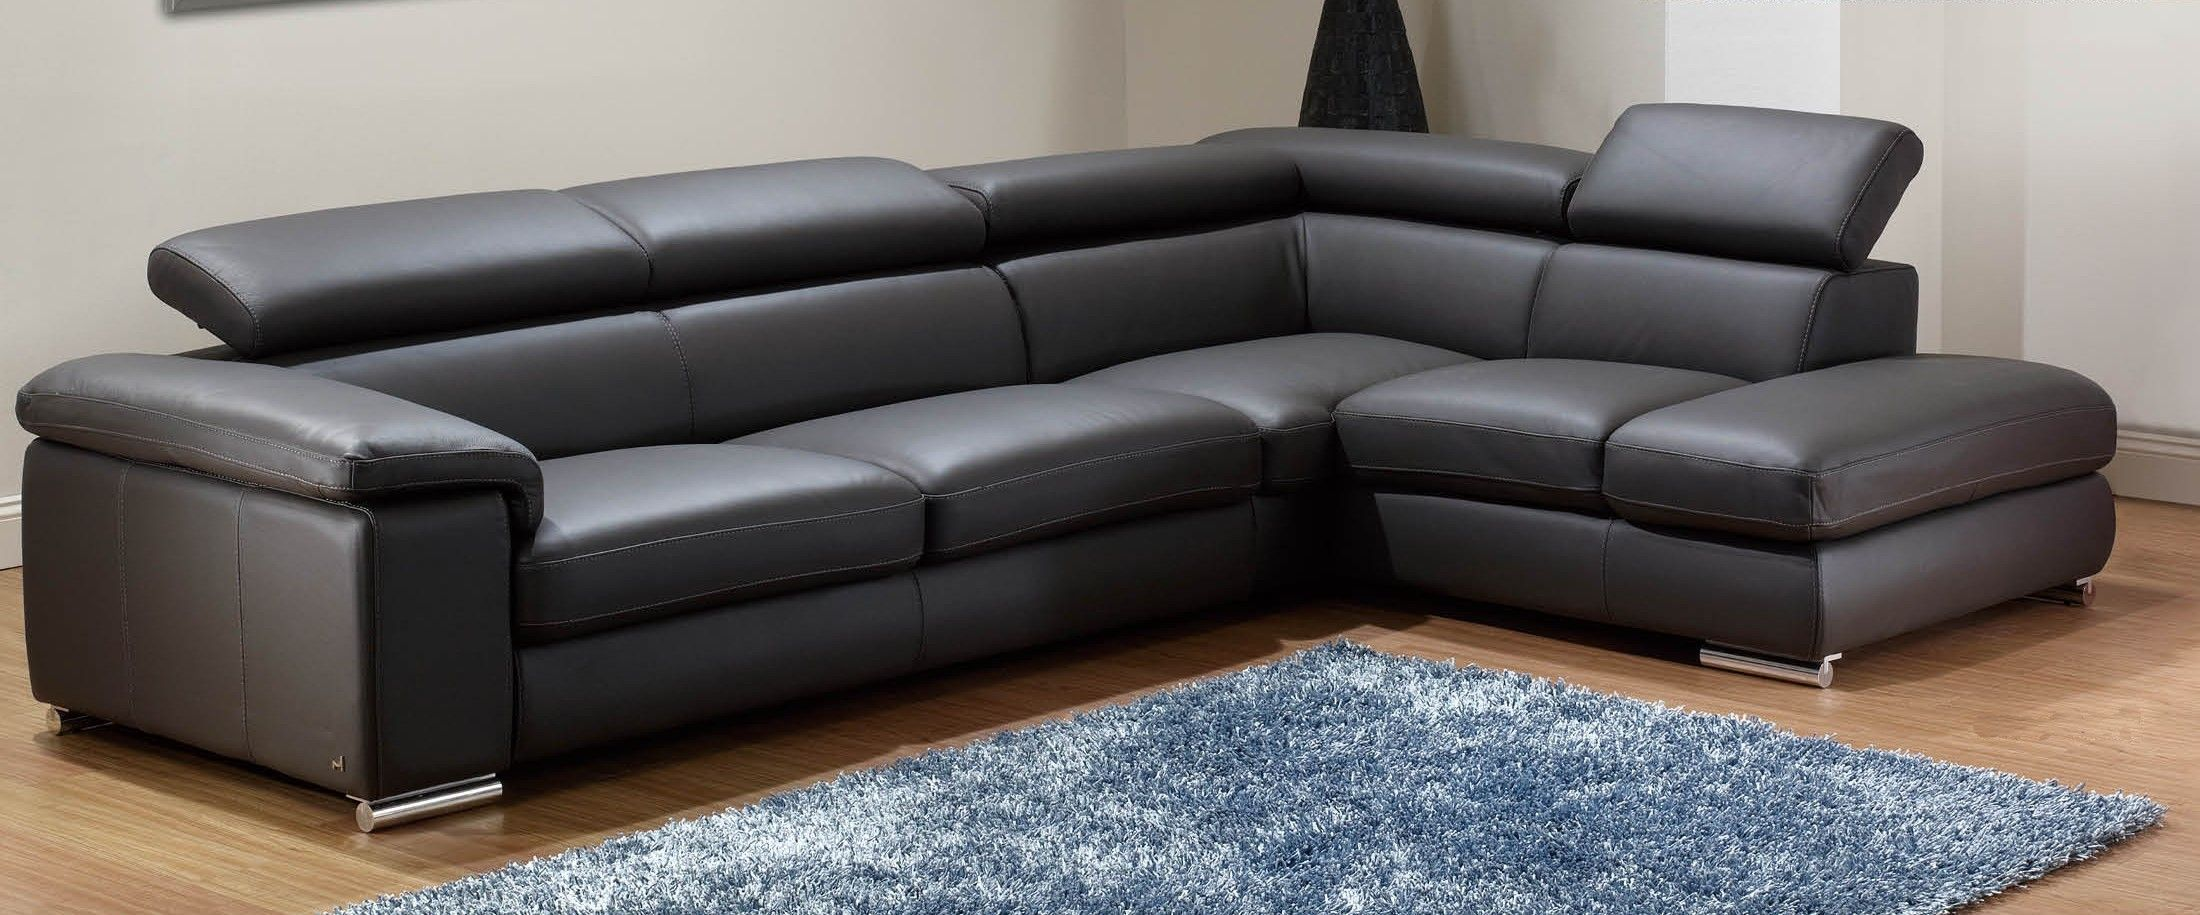 leather modern sofa sectional michael nicholas aspen awesome epic